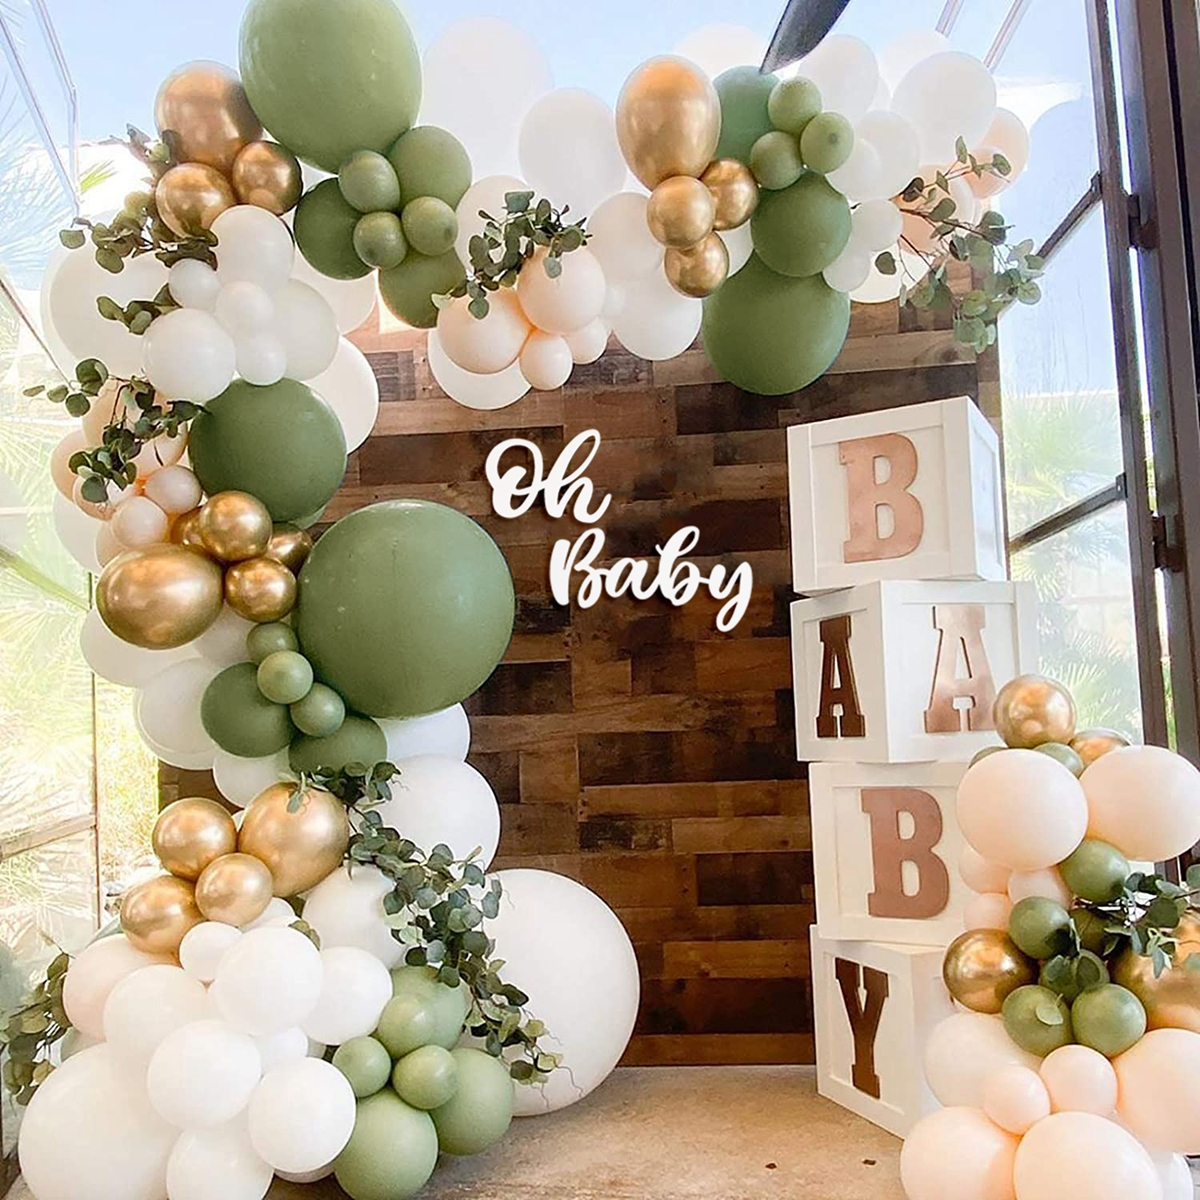 100/152pcs Macaron Balloons Arch Garland Happy Birthday Party Decoration Baby Shower Wedding Valentine Party Balloon Supplies